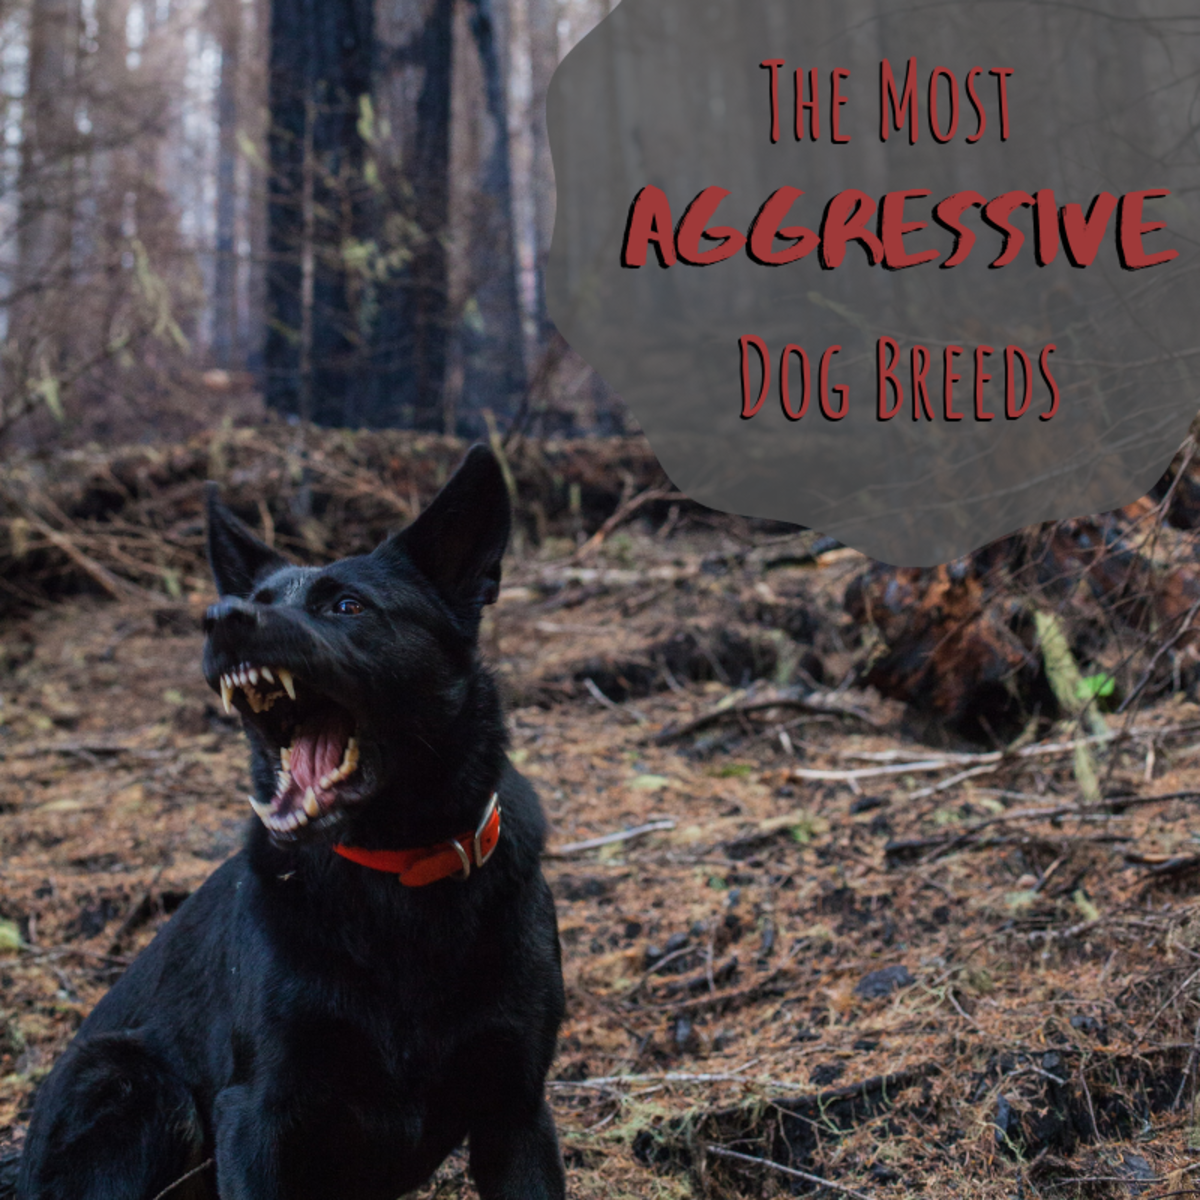 Statistically, some dog breeds have more reported instances of aggression than others.